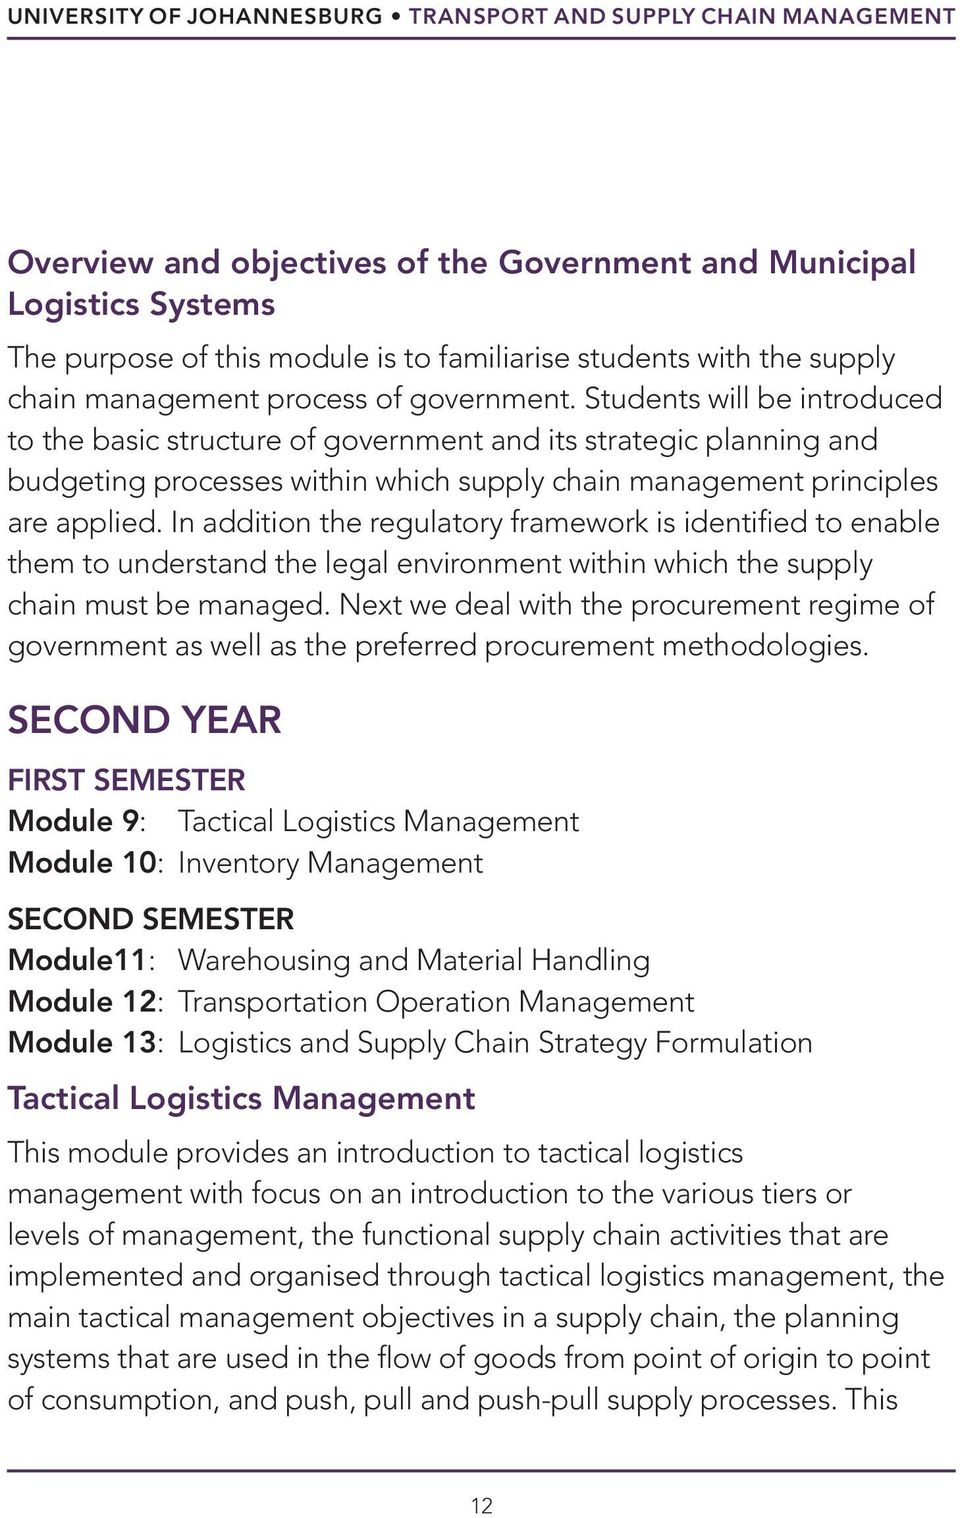 Students will be introduced to the basic structure of government and its strategic planning and budgeting processes within which supply chain management principles are applied.